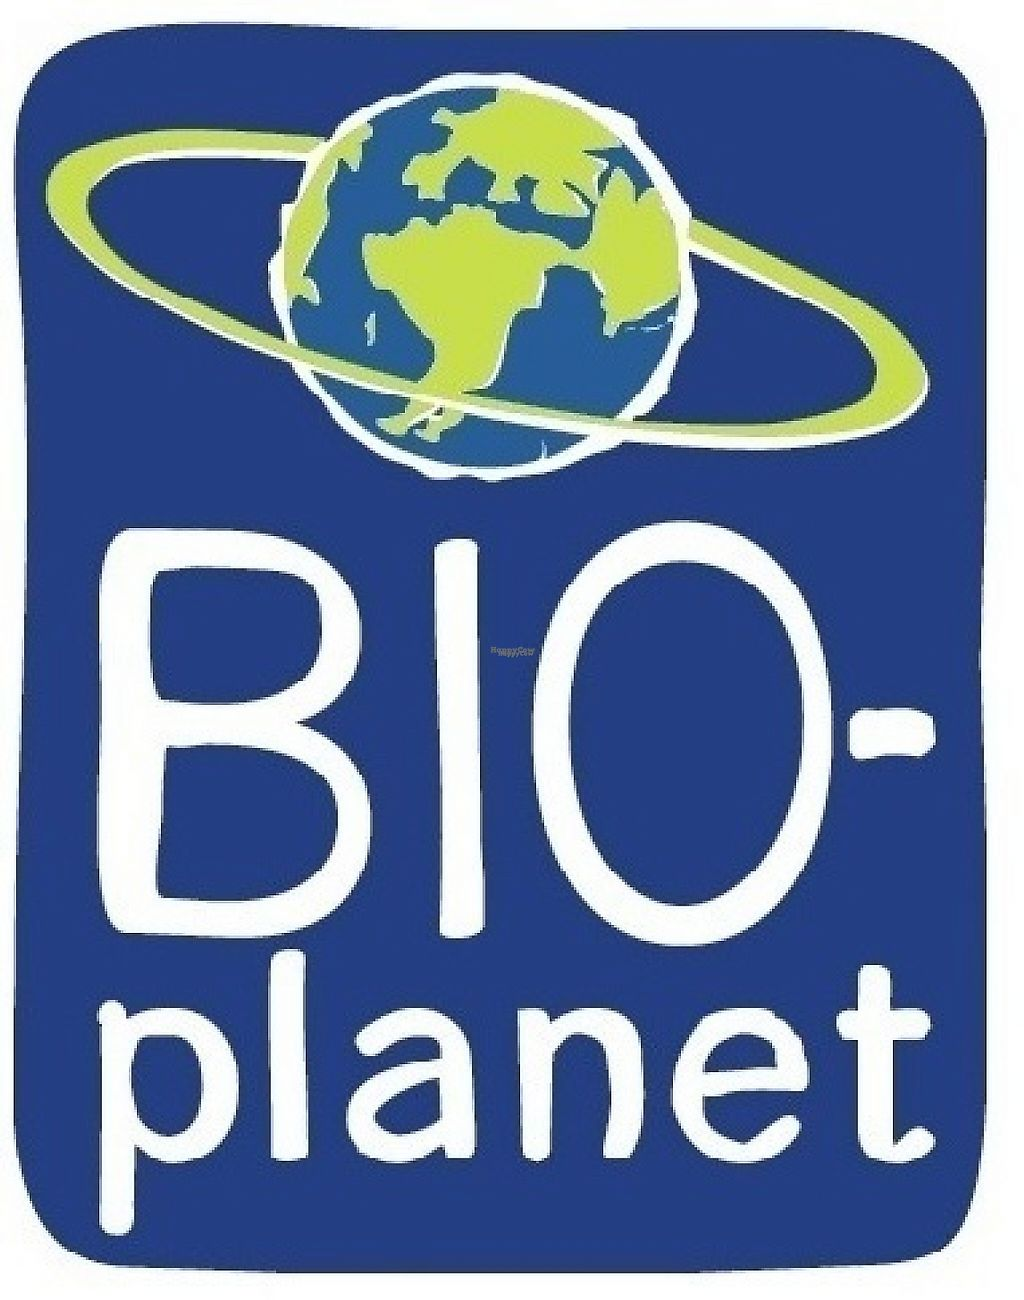 """Photo of Bio Planet  by <a href=""""/members/profile/StijnVandePaer"""">StijnVandePaer</a> <br/>Bio-store from the Colruyt Group, selling a lot of bio, vegetarian and vegan products <br/> April 10, 2017  - <a href='/contact/abuse/image/89813/246779'>Report</a>"""